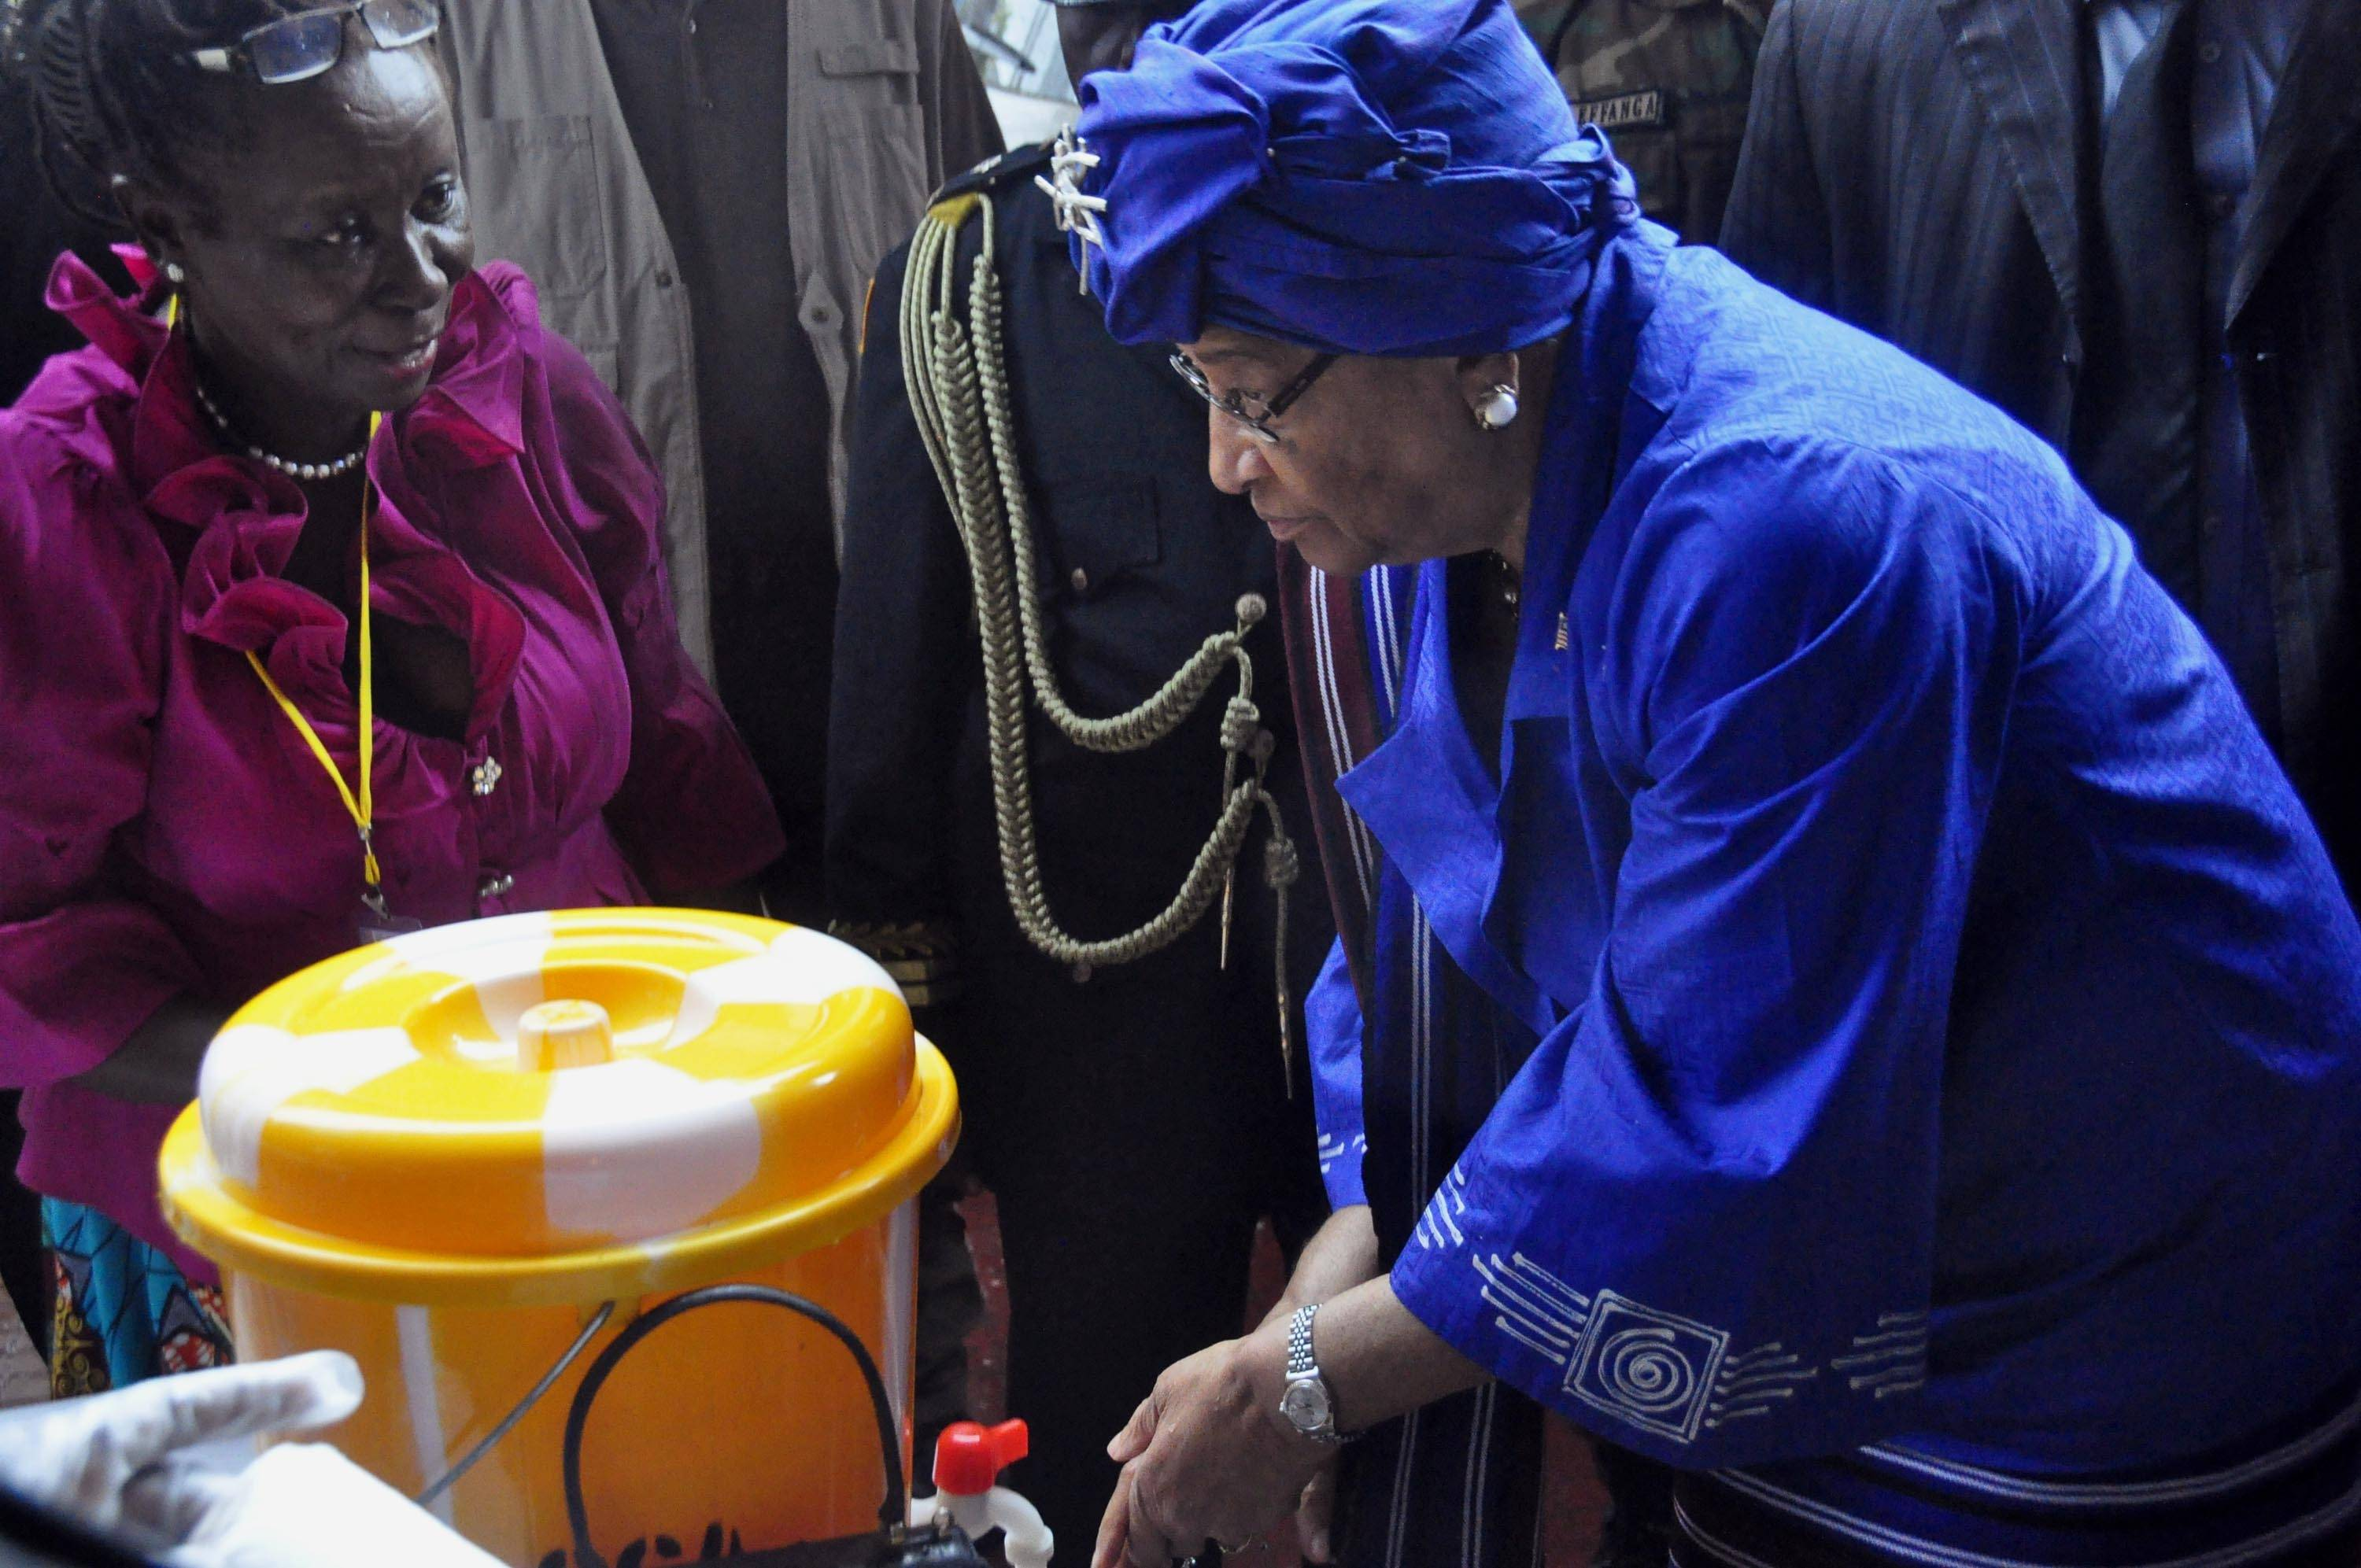 Liberia President Ellen Johnson Sirleaf, right, demonstrates to people how to wash their hands properly in order to prevent the spread of the Ebola virus, during Independence Day celebrations in the city of Monrovia, Liberia, Saturday.